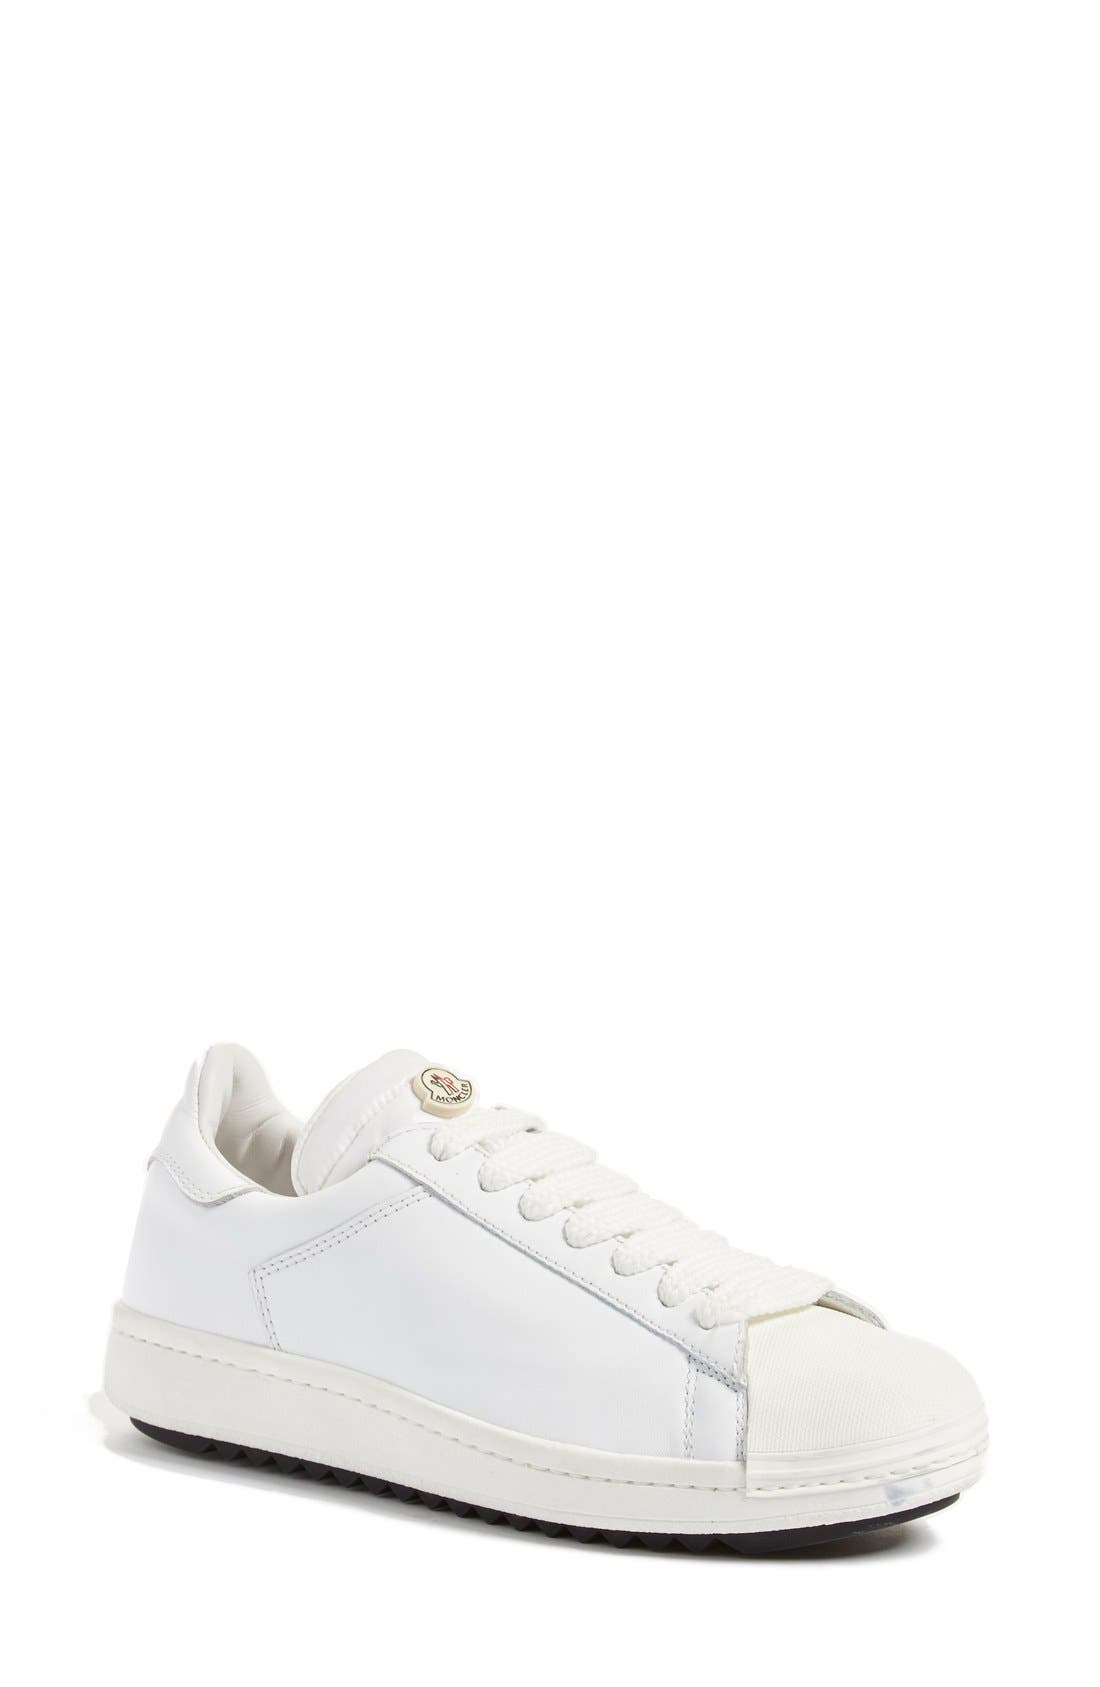 'Angeline Scarpa' Sneaker,                         Main,                         color, 100